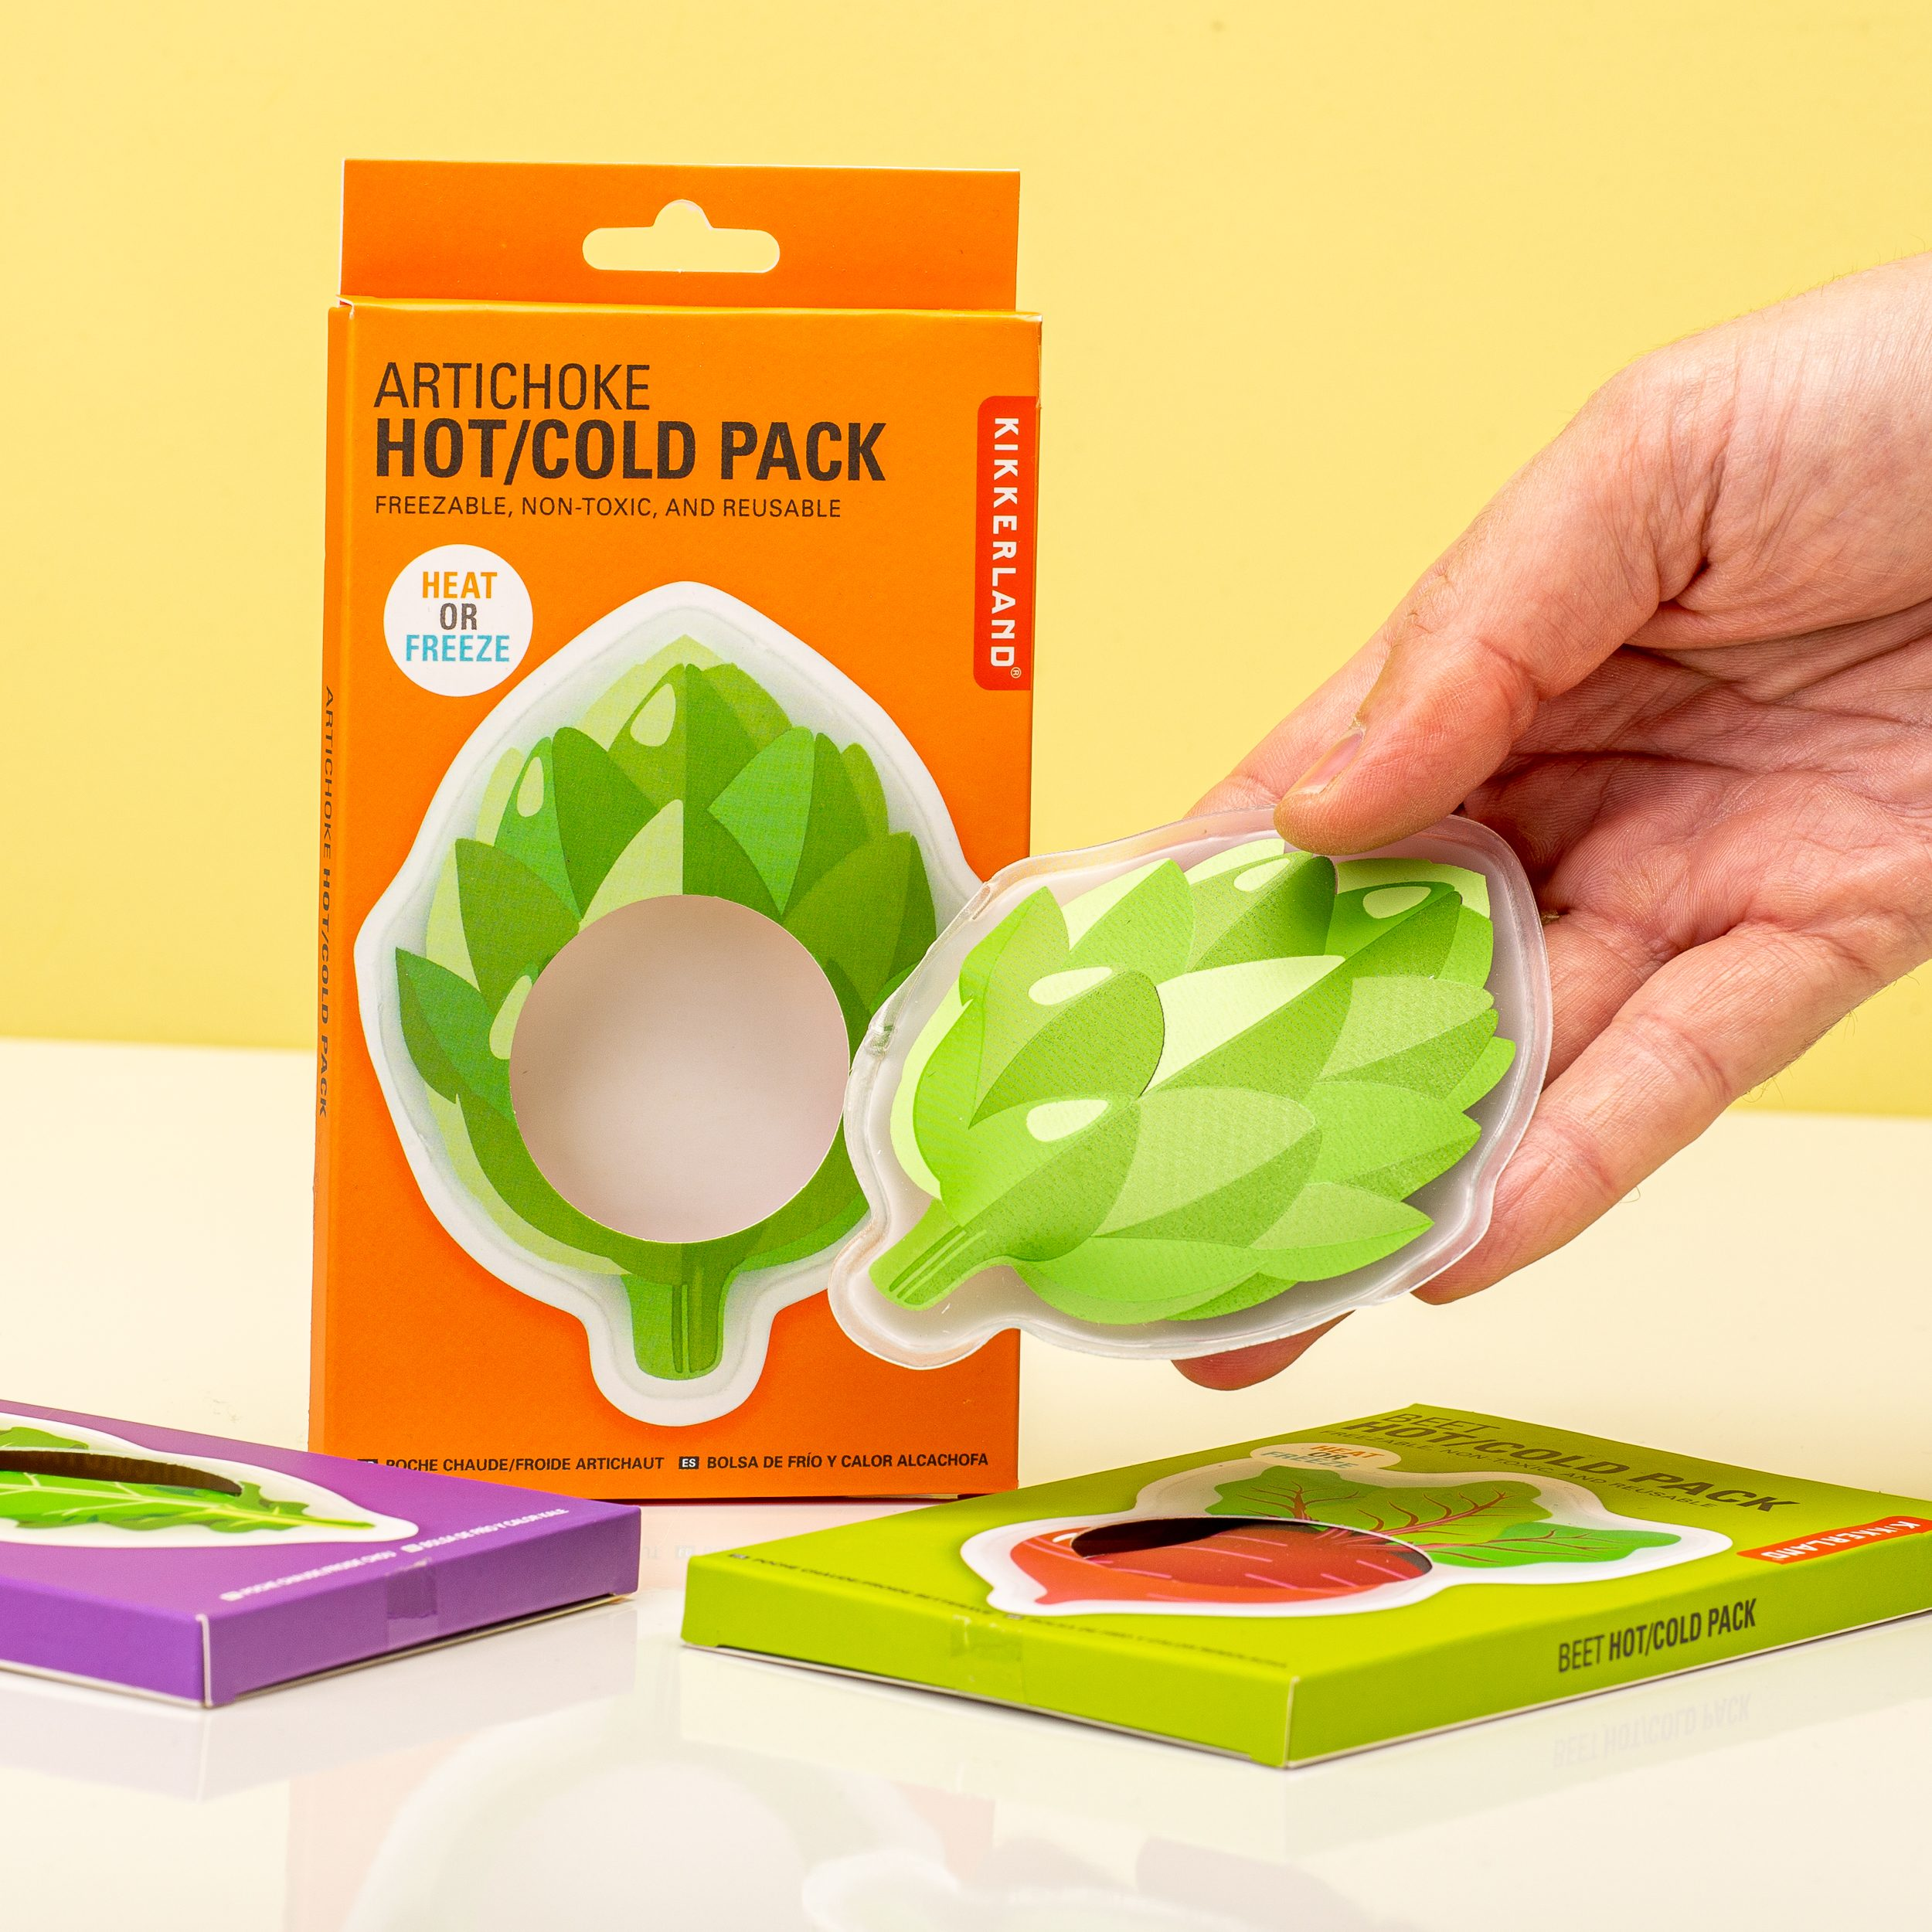 Hot-cold Pack - Artisjok